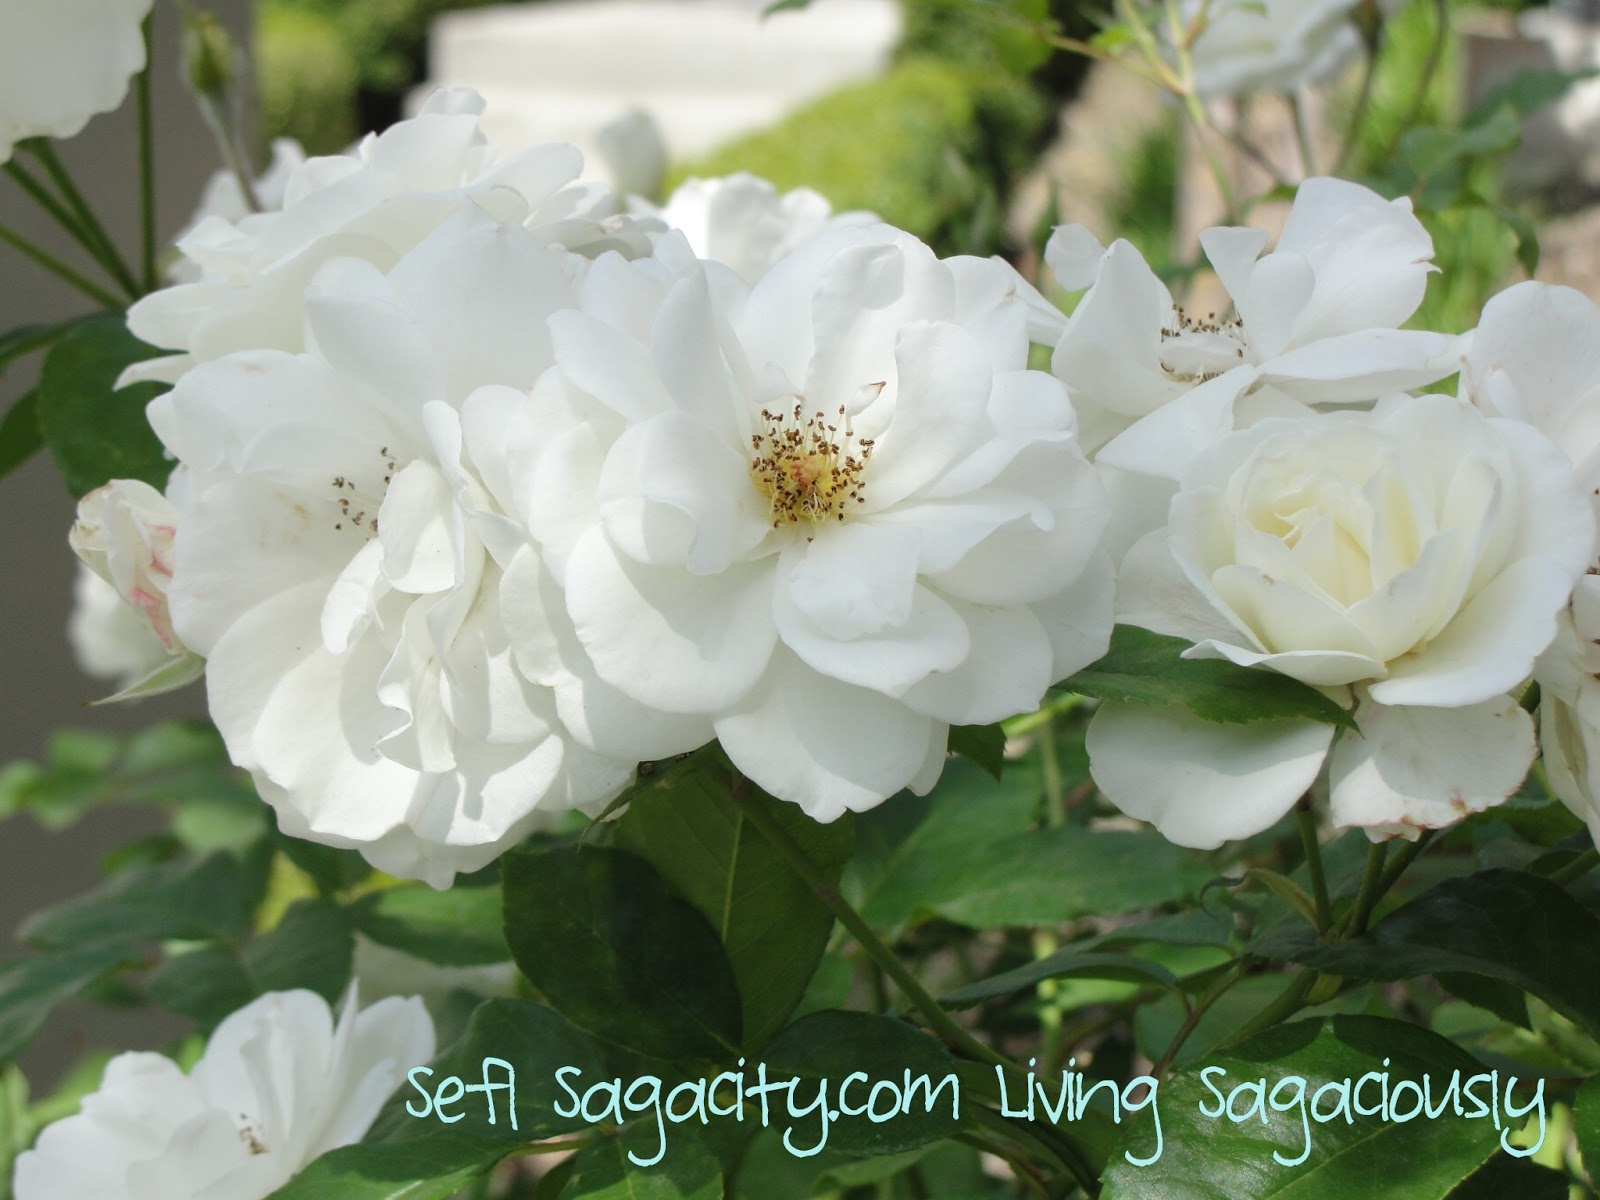 White Carpet Roses - Self Sagacity